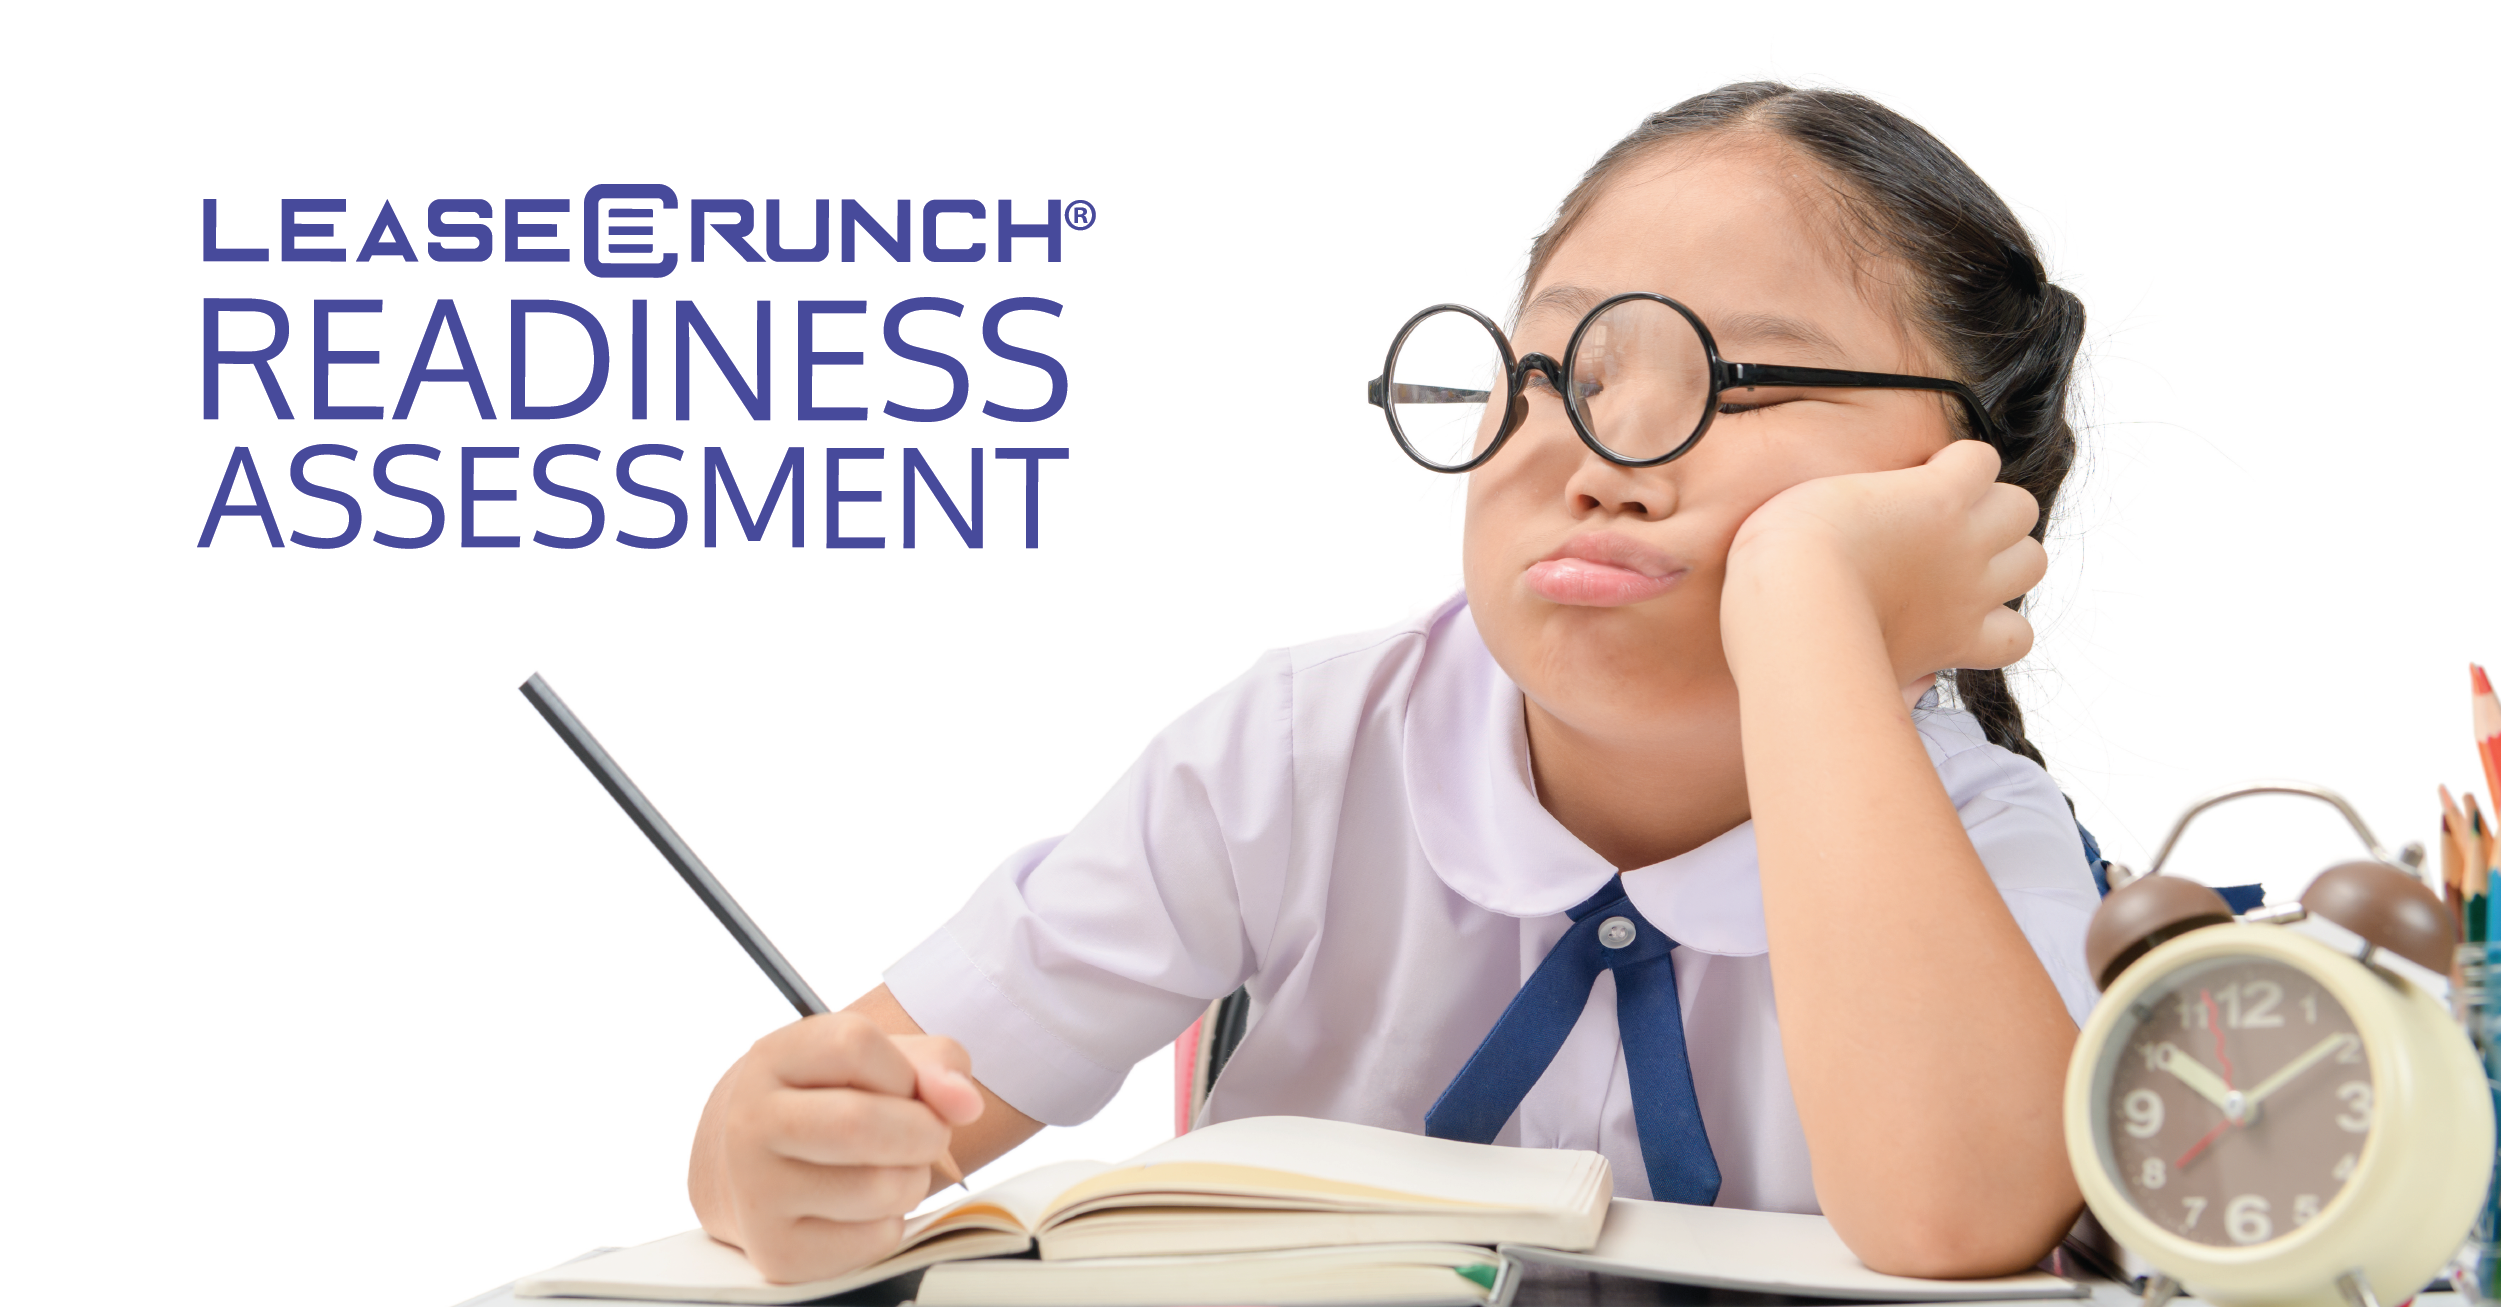 LeaseCrunch Readiness Assessment logo in front of a school child at a desk.